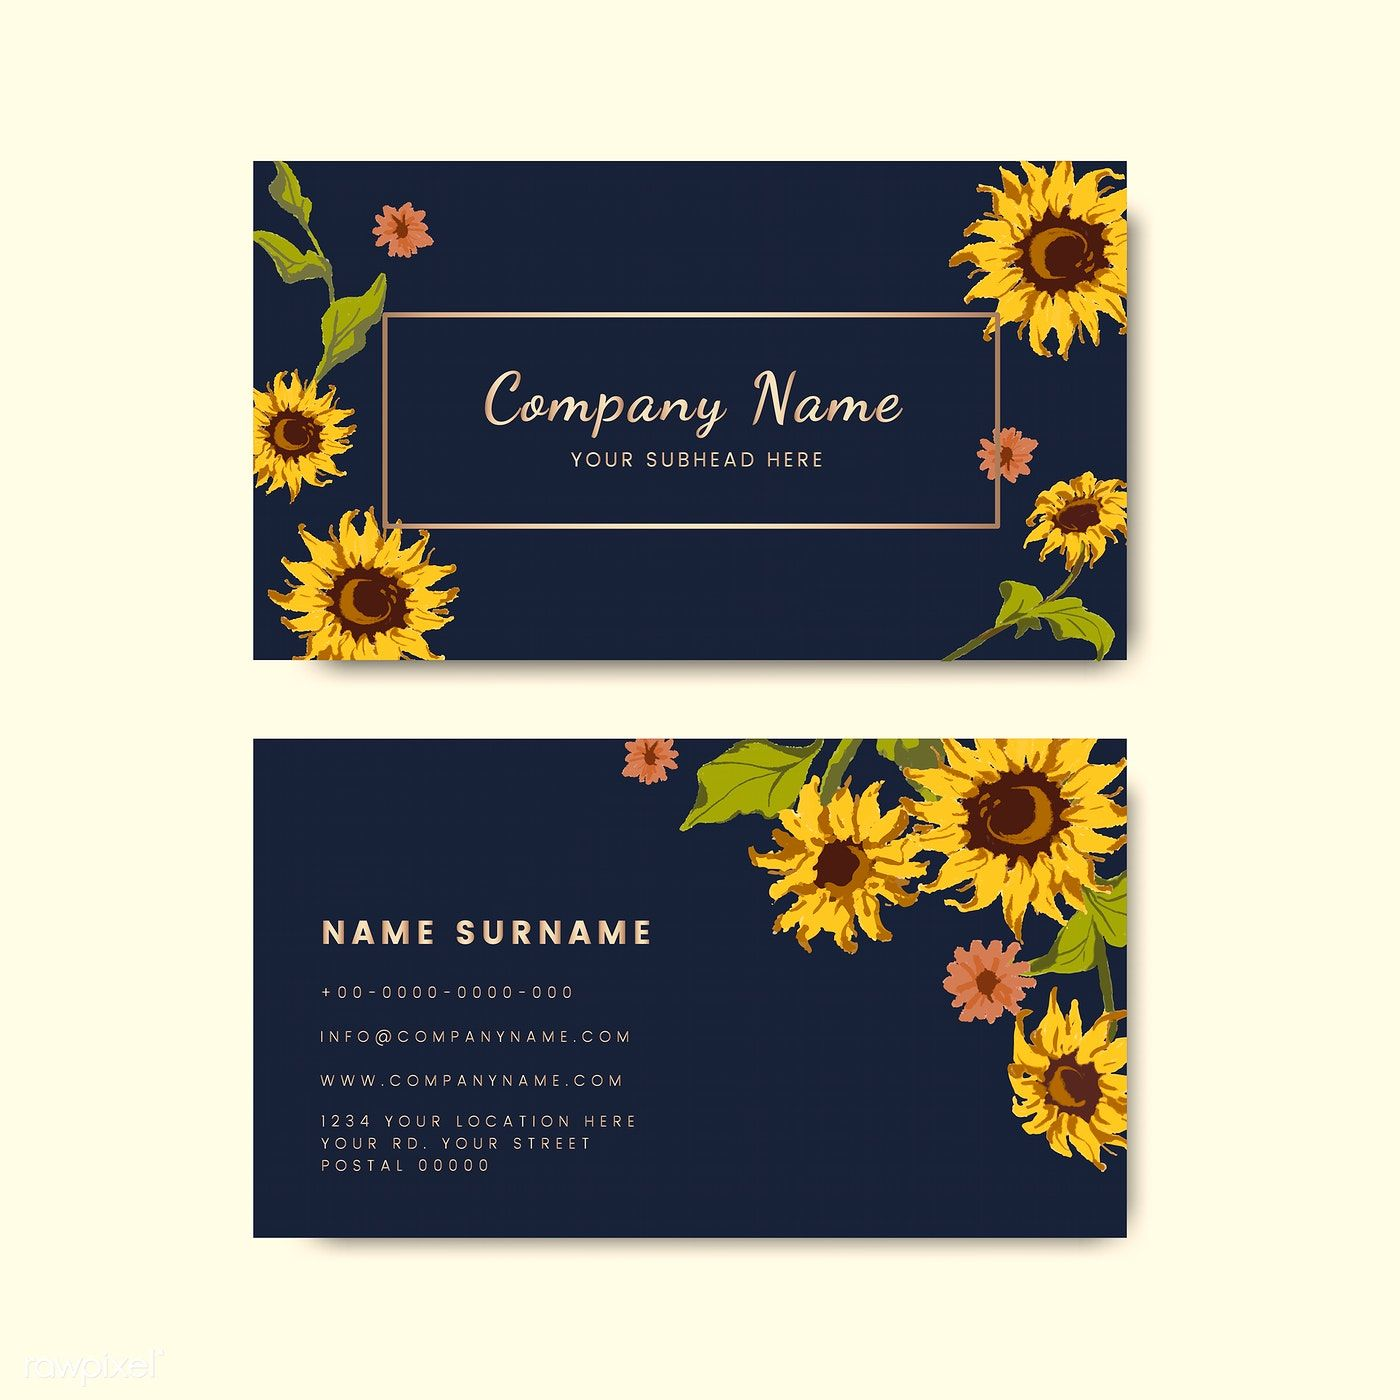 Business Card Templates With Decorative Sunflower Design Free Image By Rawpixel Com Sicha Business Card Mock Up Design Mockup Free Vector Free